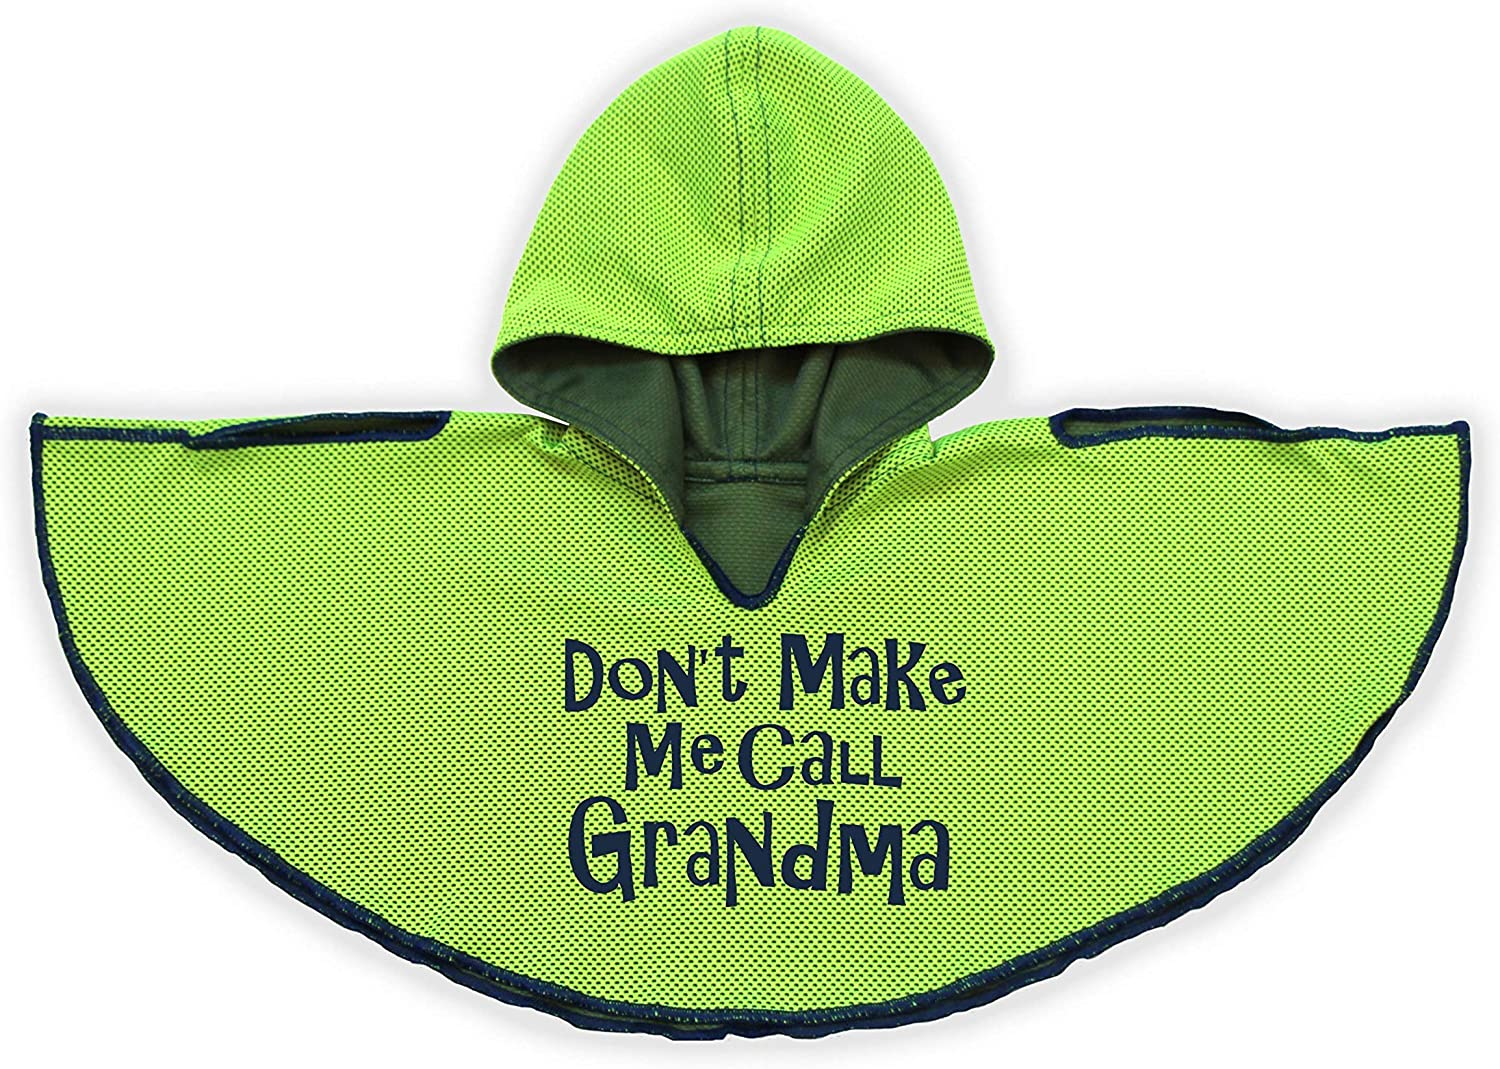 Cooling Capes - New - Don't Make Me Call Grandma Just Soak The Cape in Water and Feel The Cooling Effects